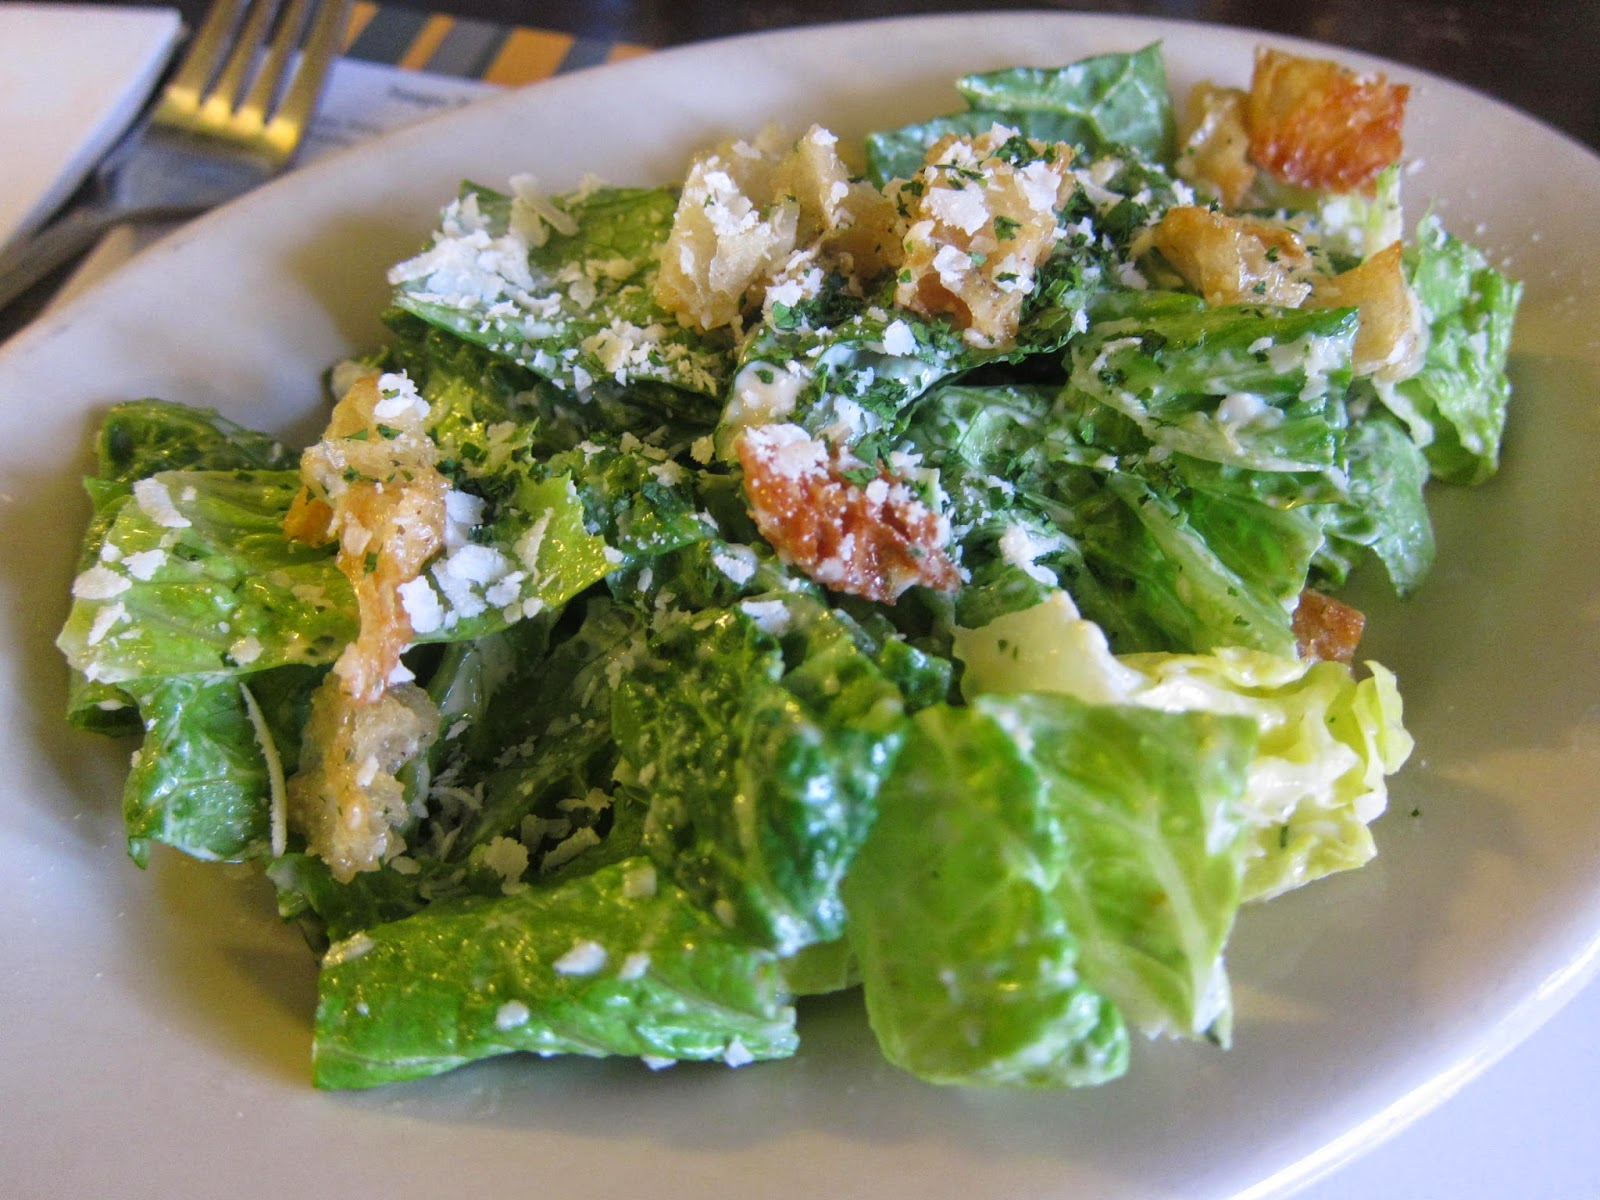 Caesar salad at Kitchen on Common in Belmont, Mass. | The Economical Eater